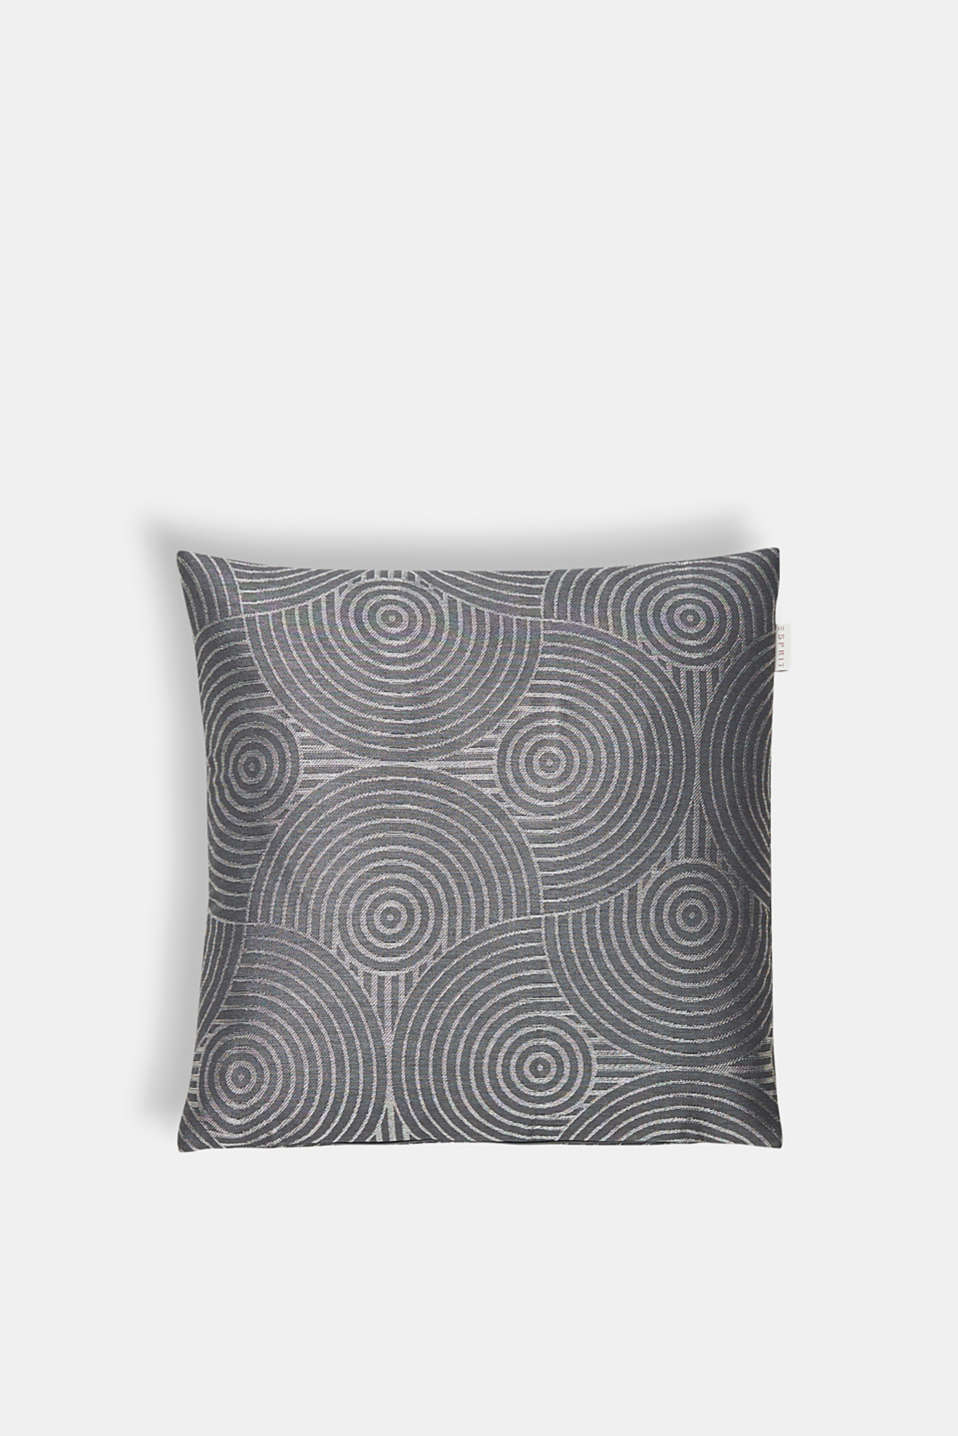 Esprit - Cushion cover with an interwoven metallic pattern